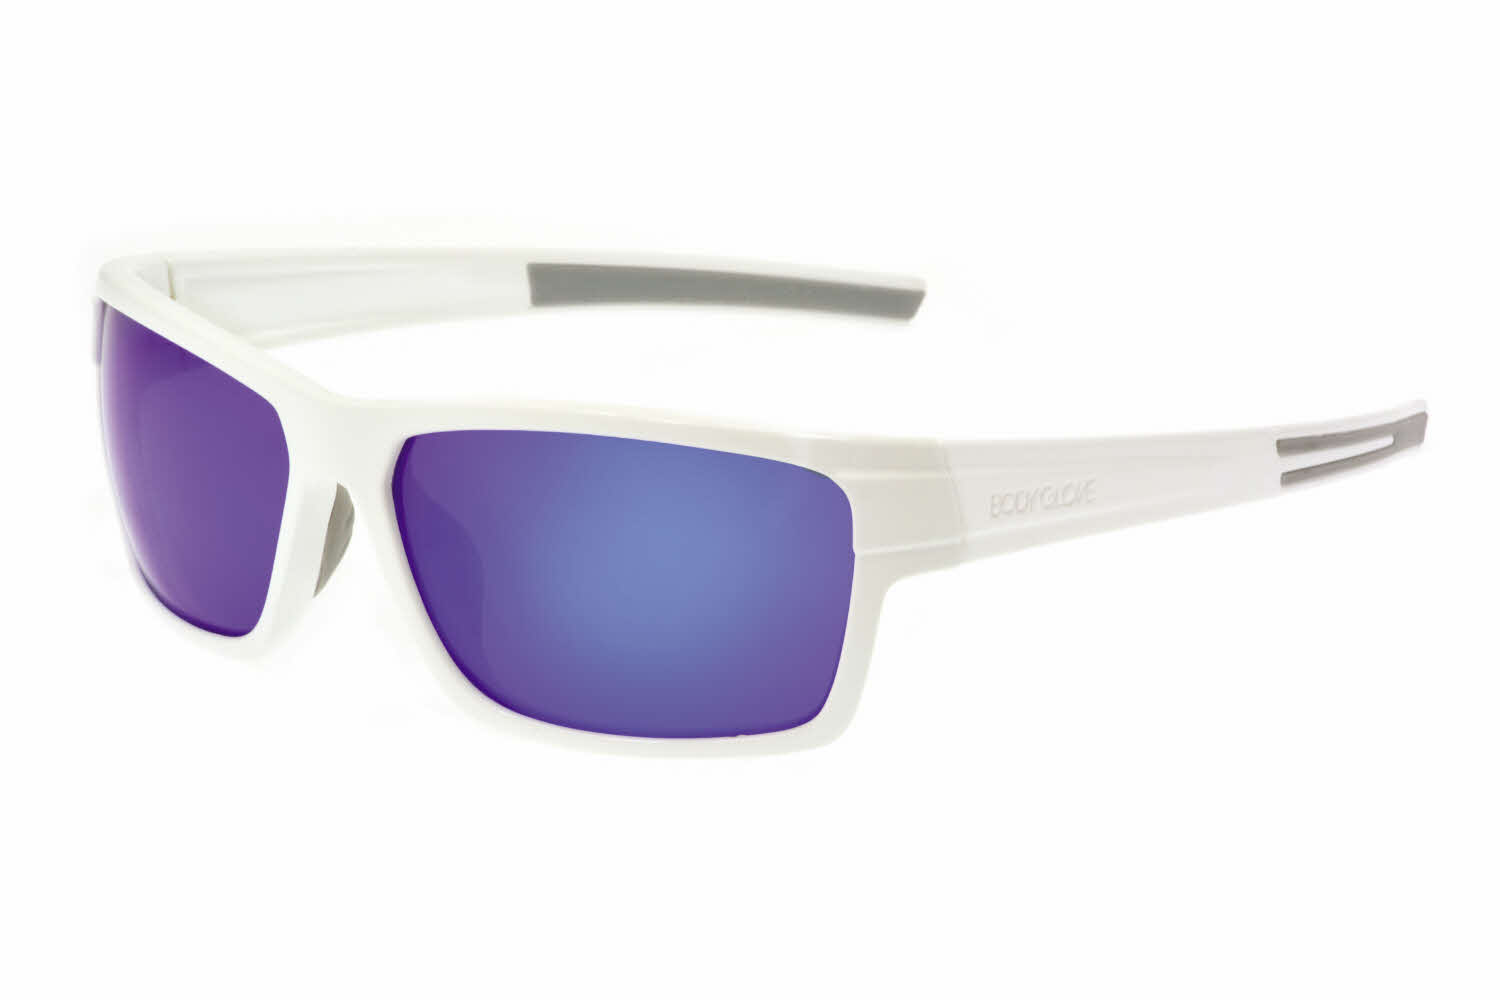 Body Glove Vapor 18 Sunglasses